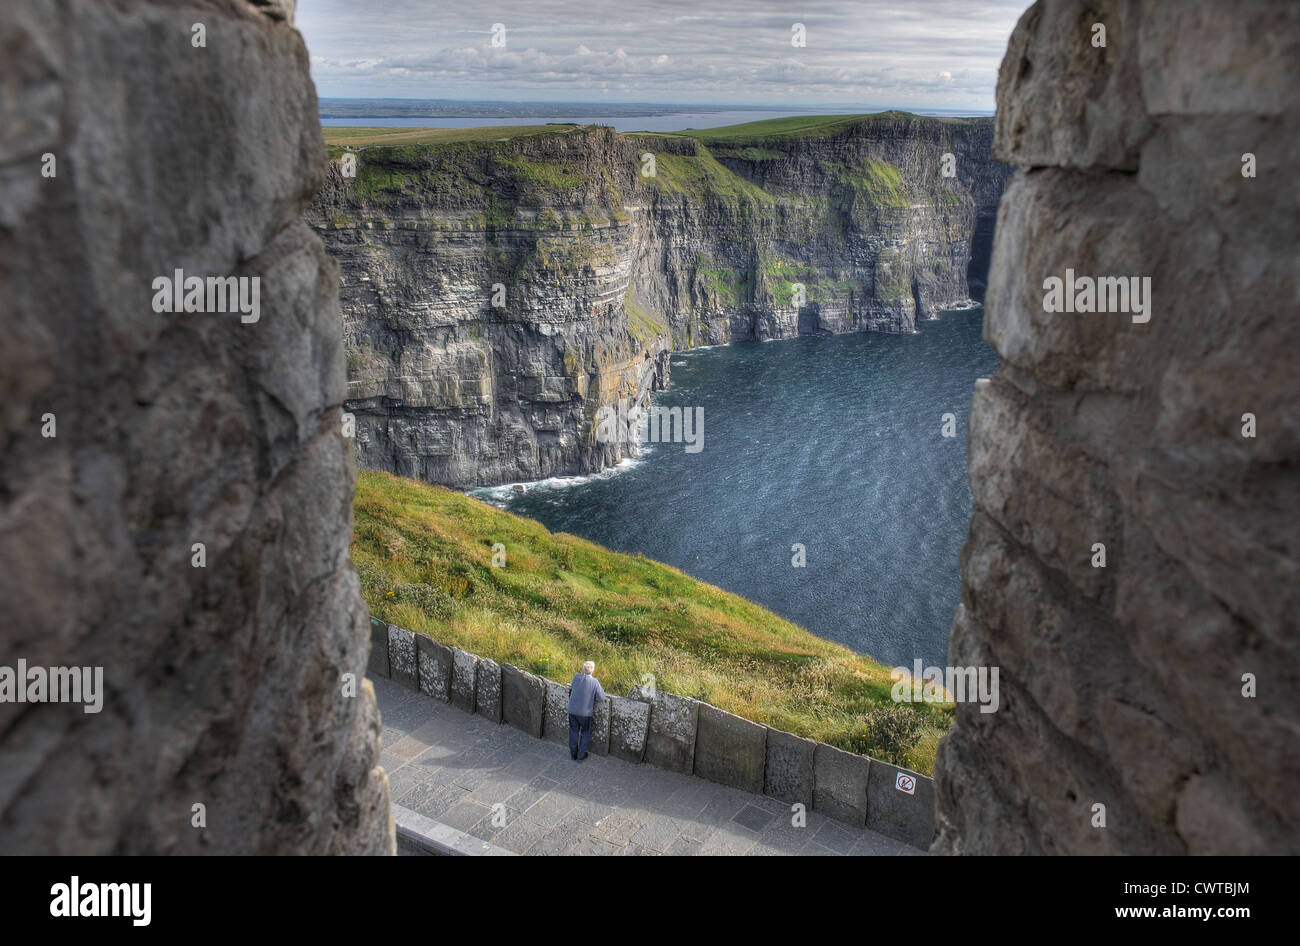 The Cliffs of Moher on the West Coast of Ireland rise vertically more than 200 meters out of the Atlantic Ocean - Stock Image